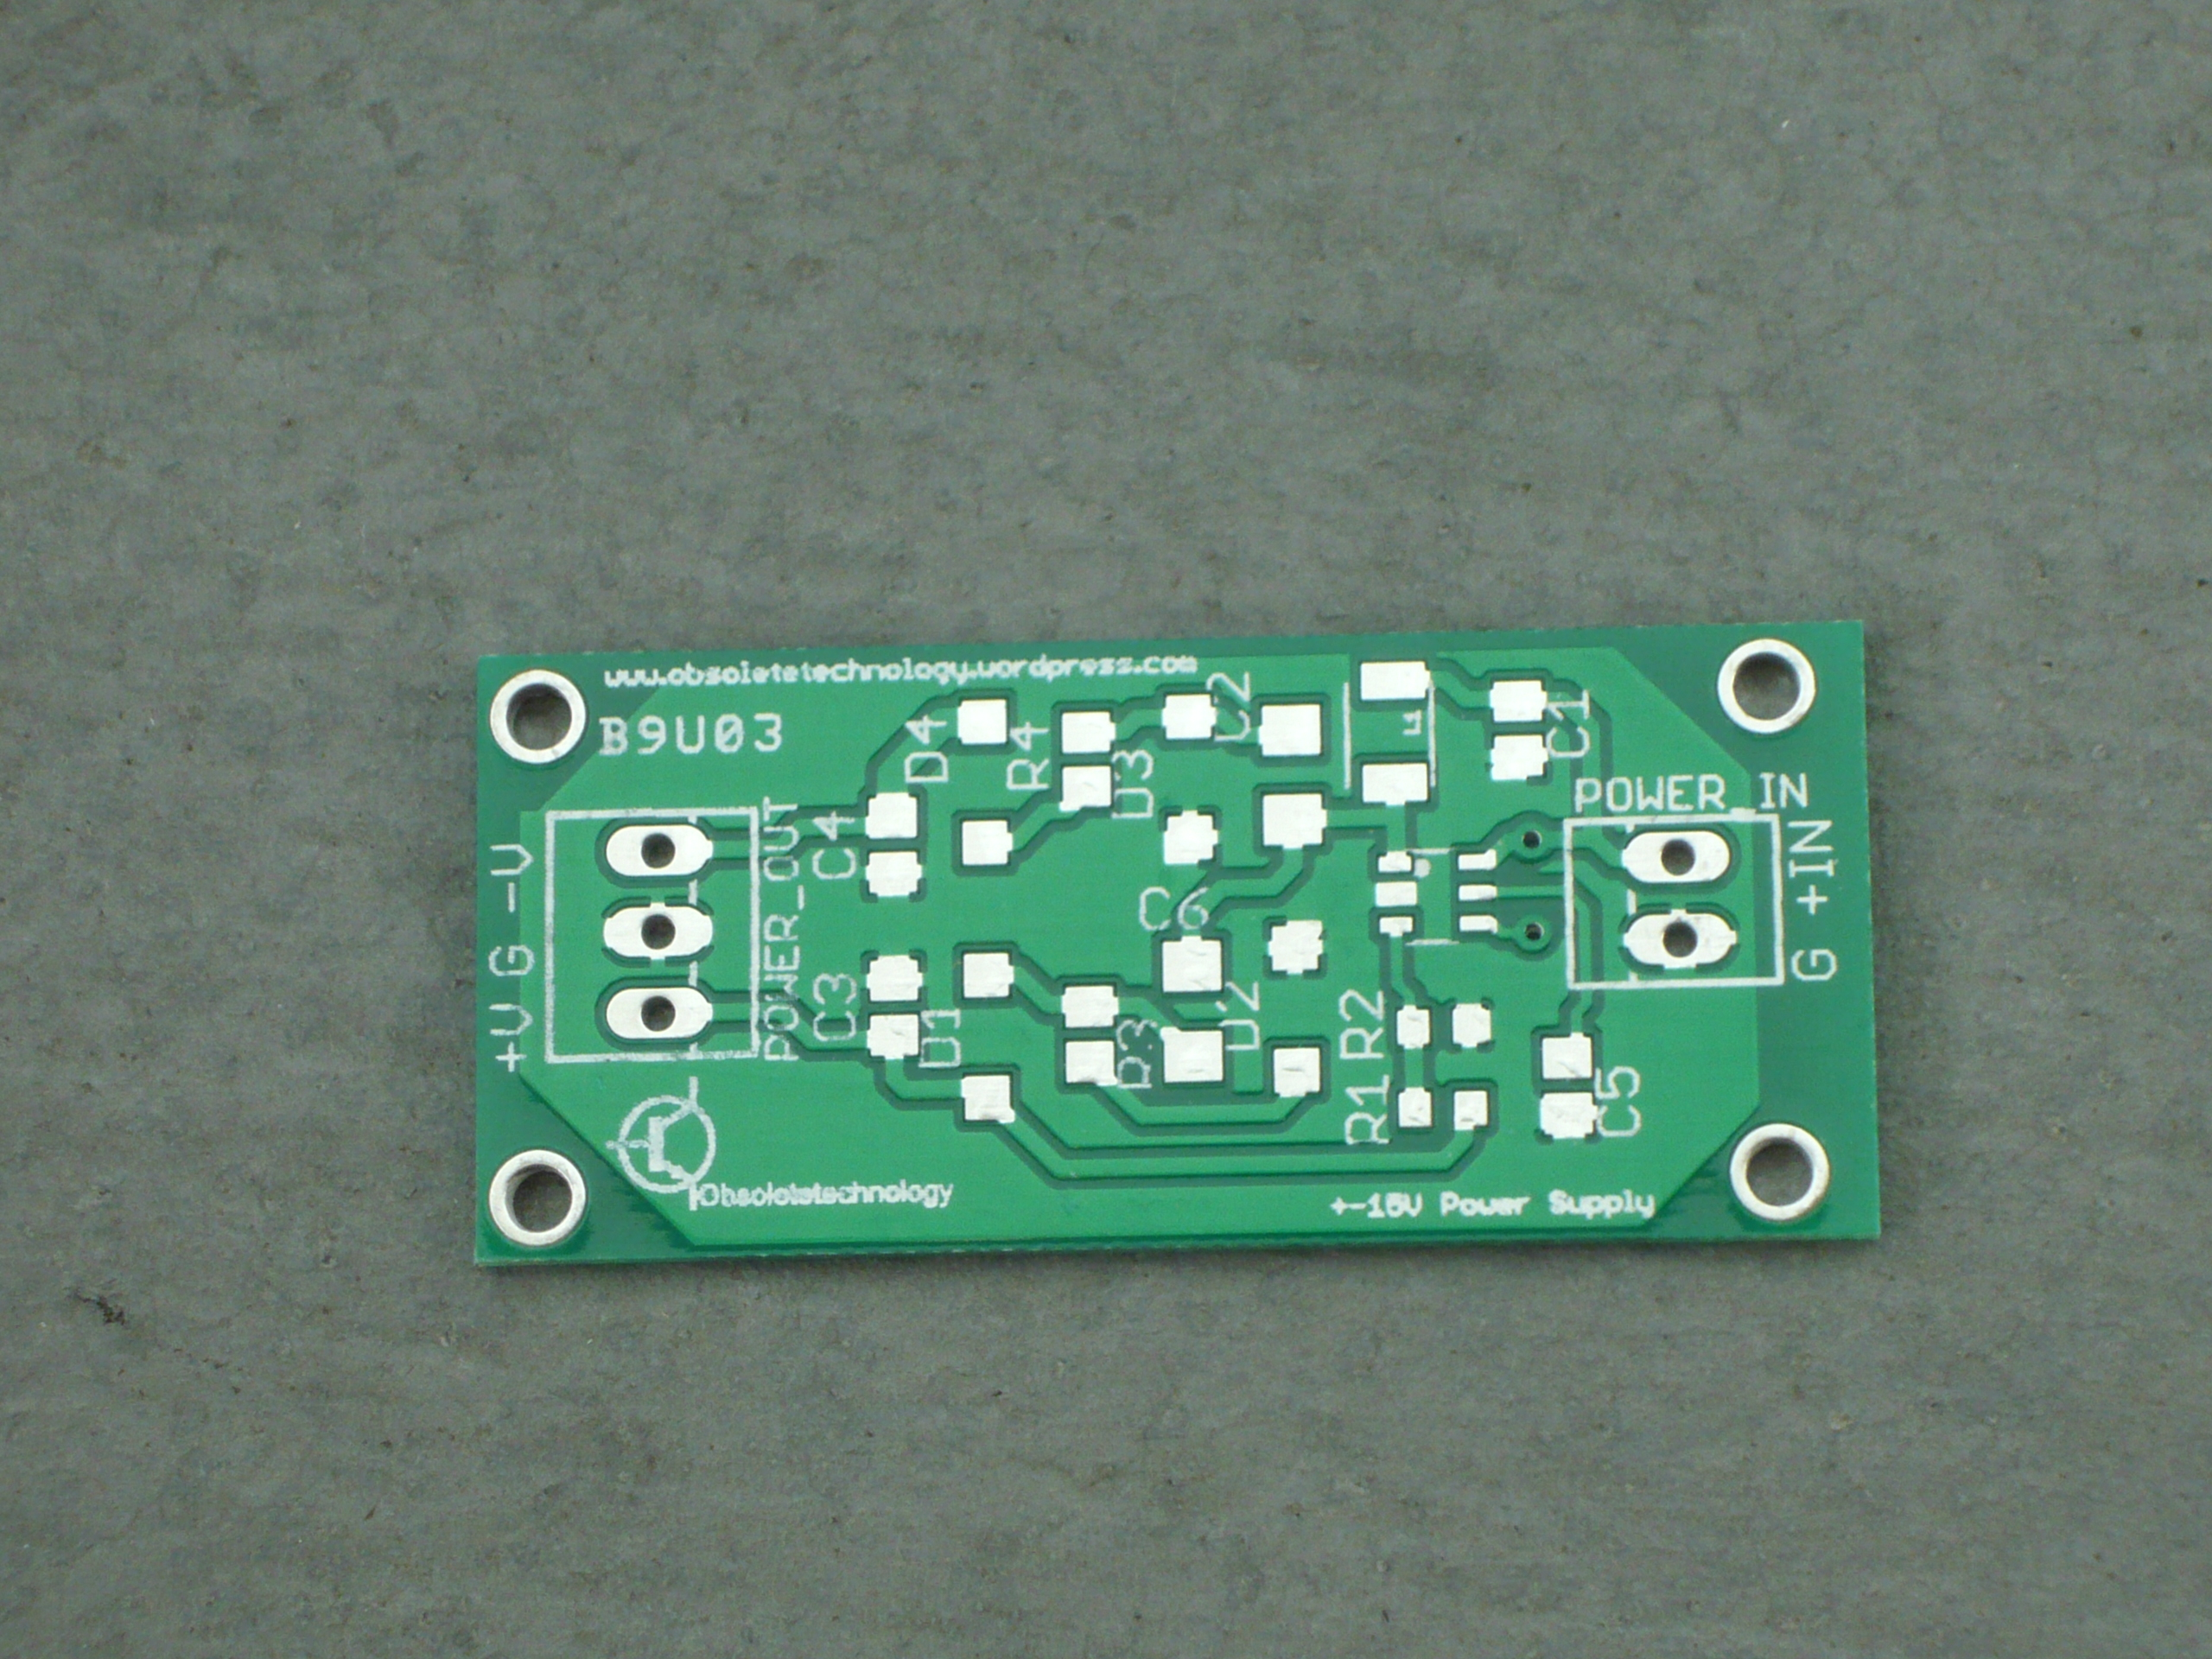 DC-DC Bipolar Power Supply for Effect Pedals | Obsoletetechnology